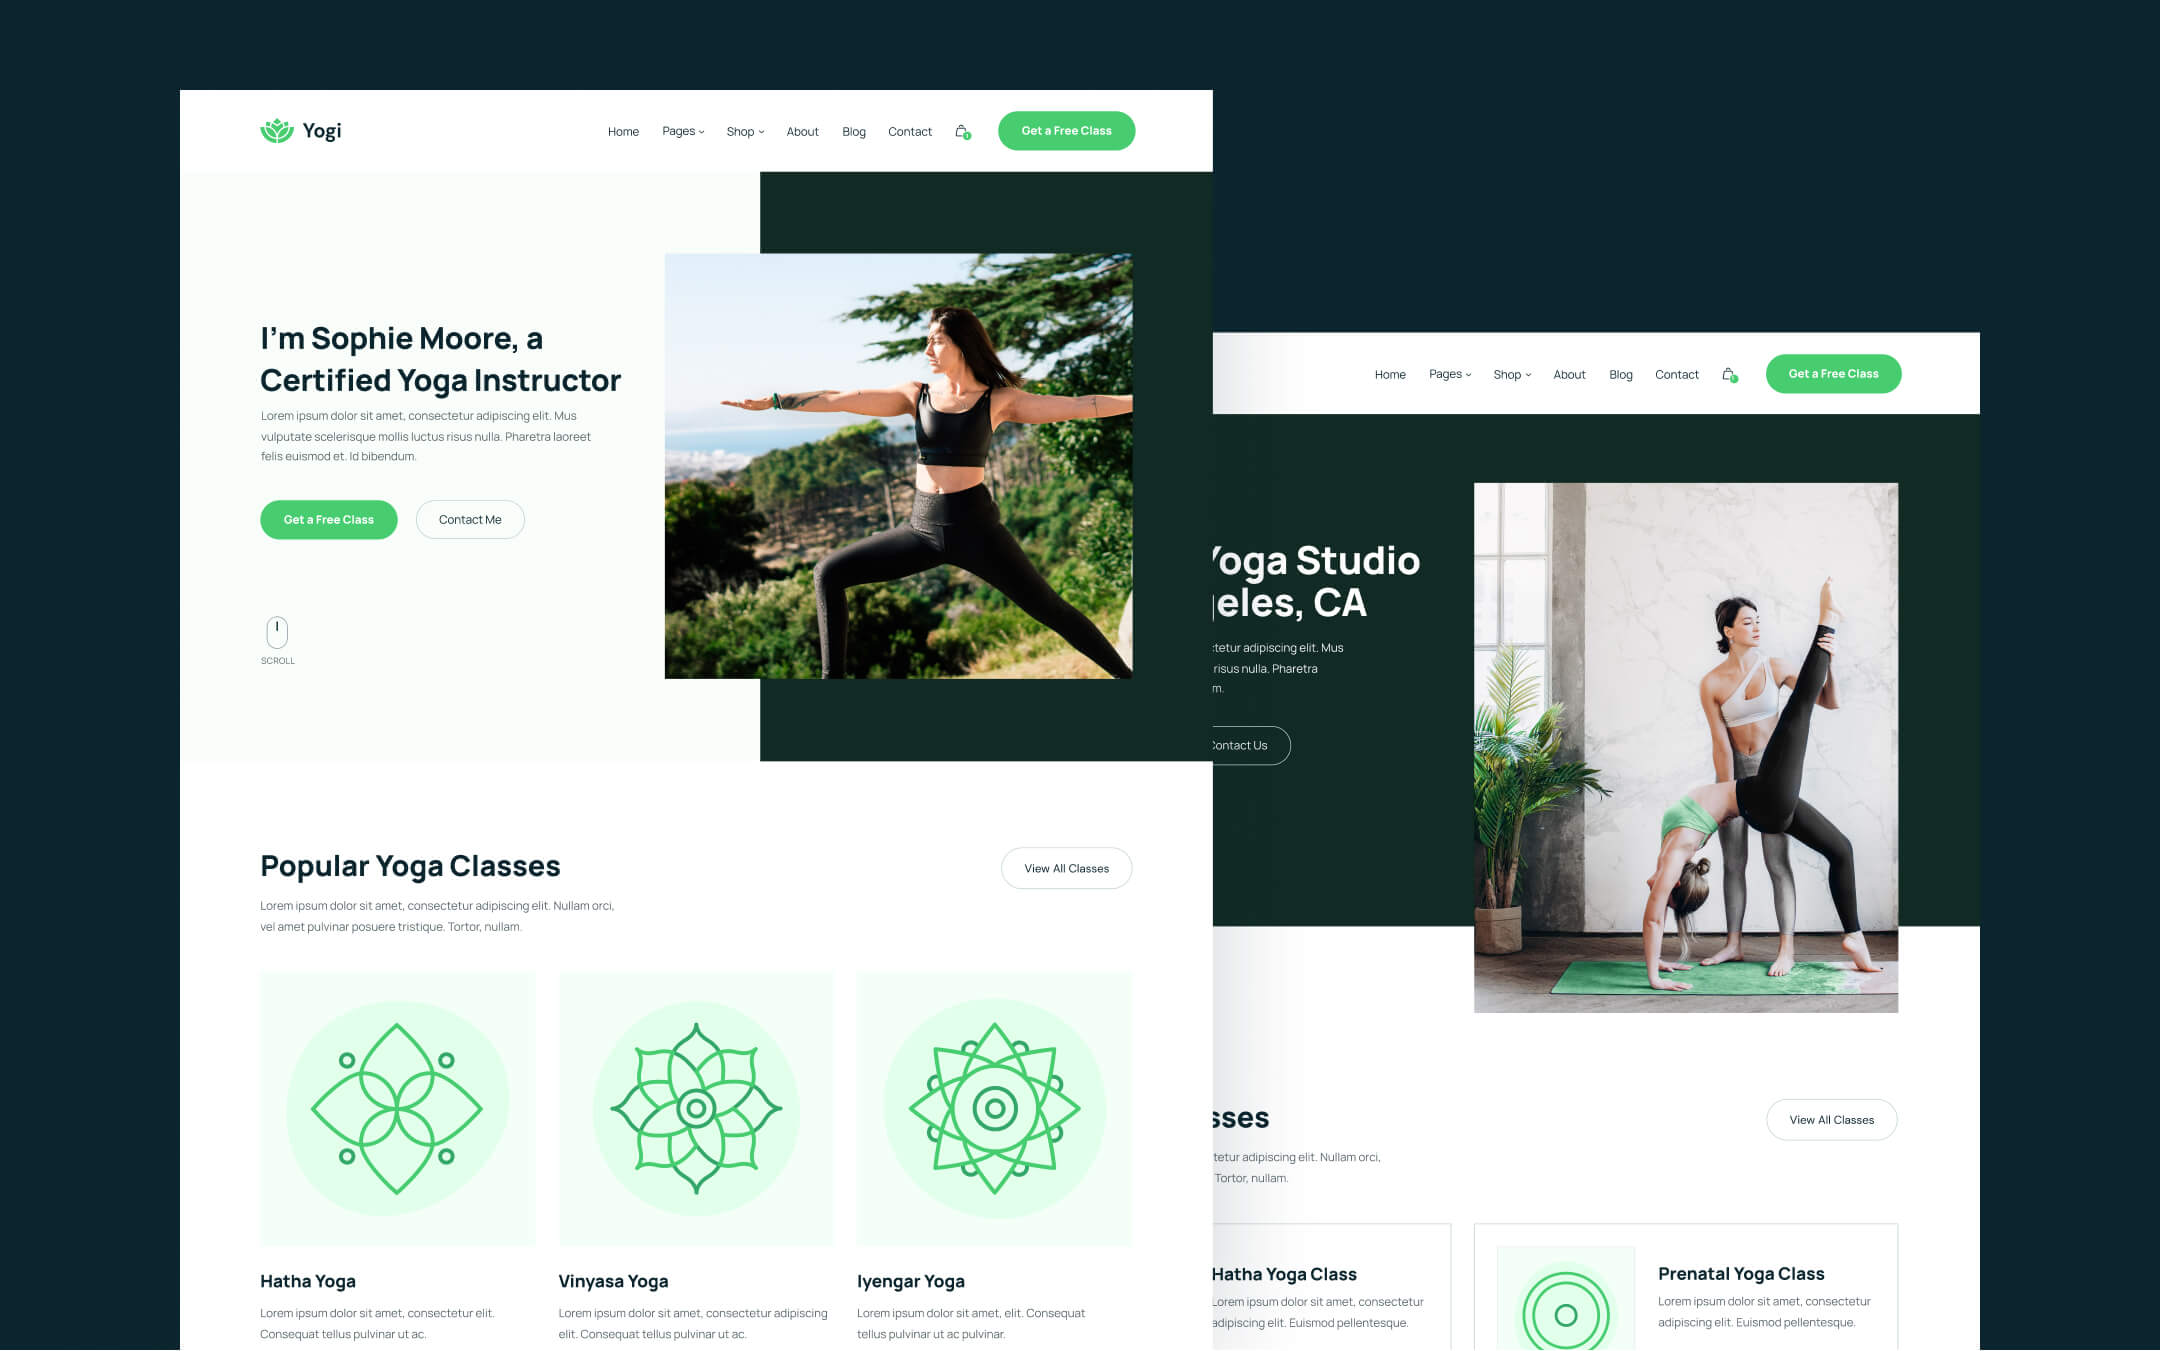 Yoga Teacher & Studio Webflow Template